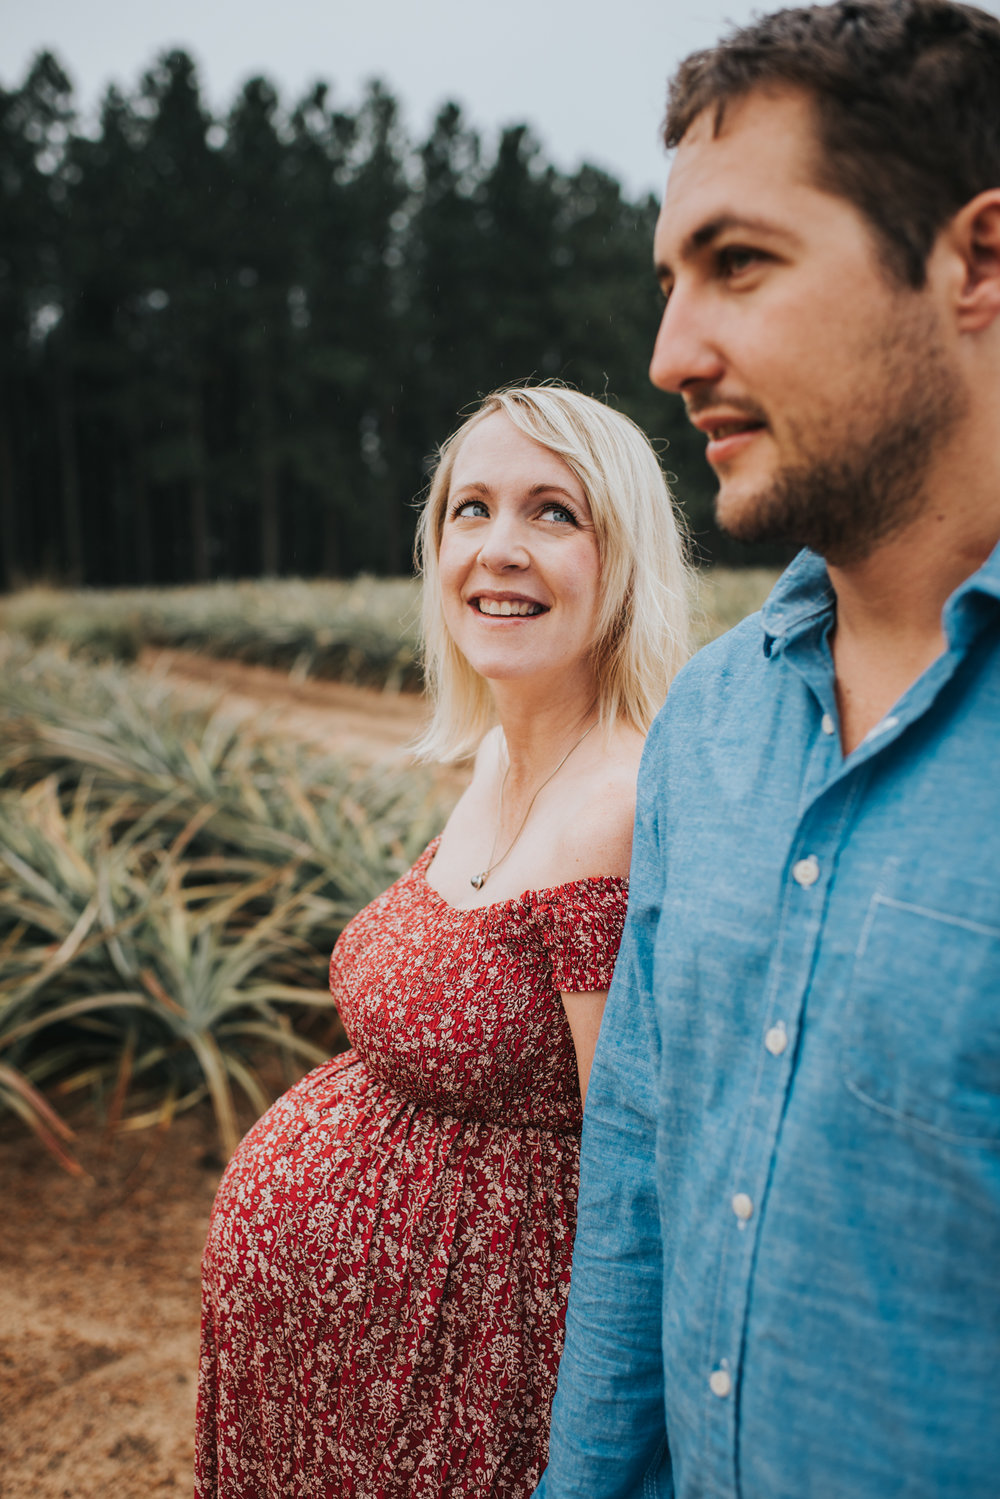 Brisbane Maternity Photographer | Newborn Photography-8.jpg